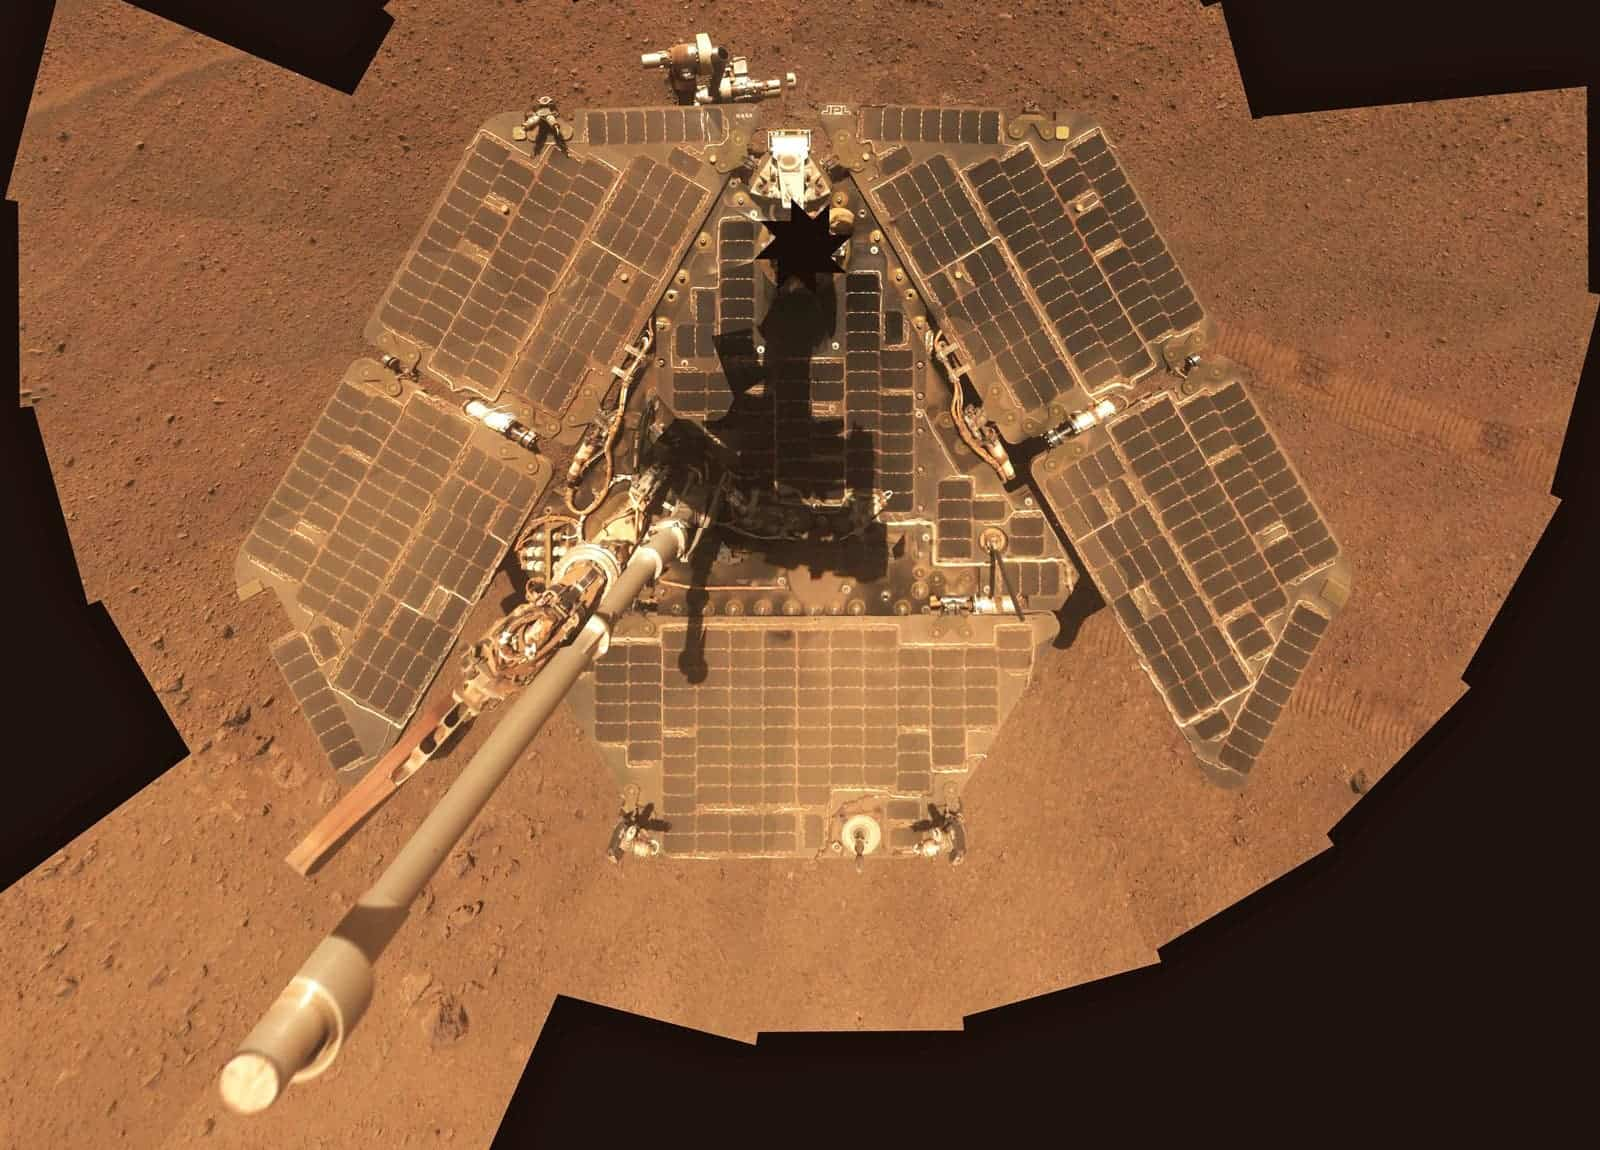 NASA's Mars 'Opportunity' Rover May Be Lost in Massive Dust Storm